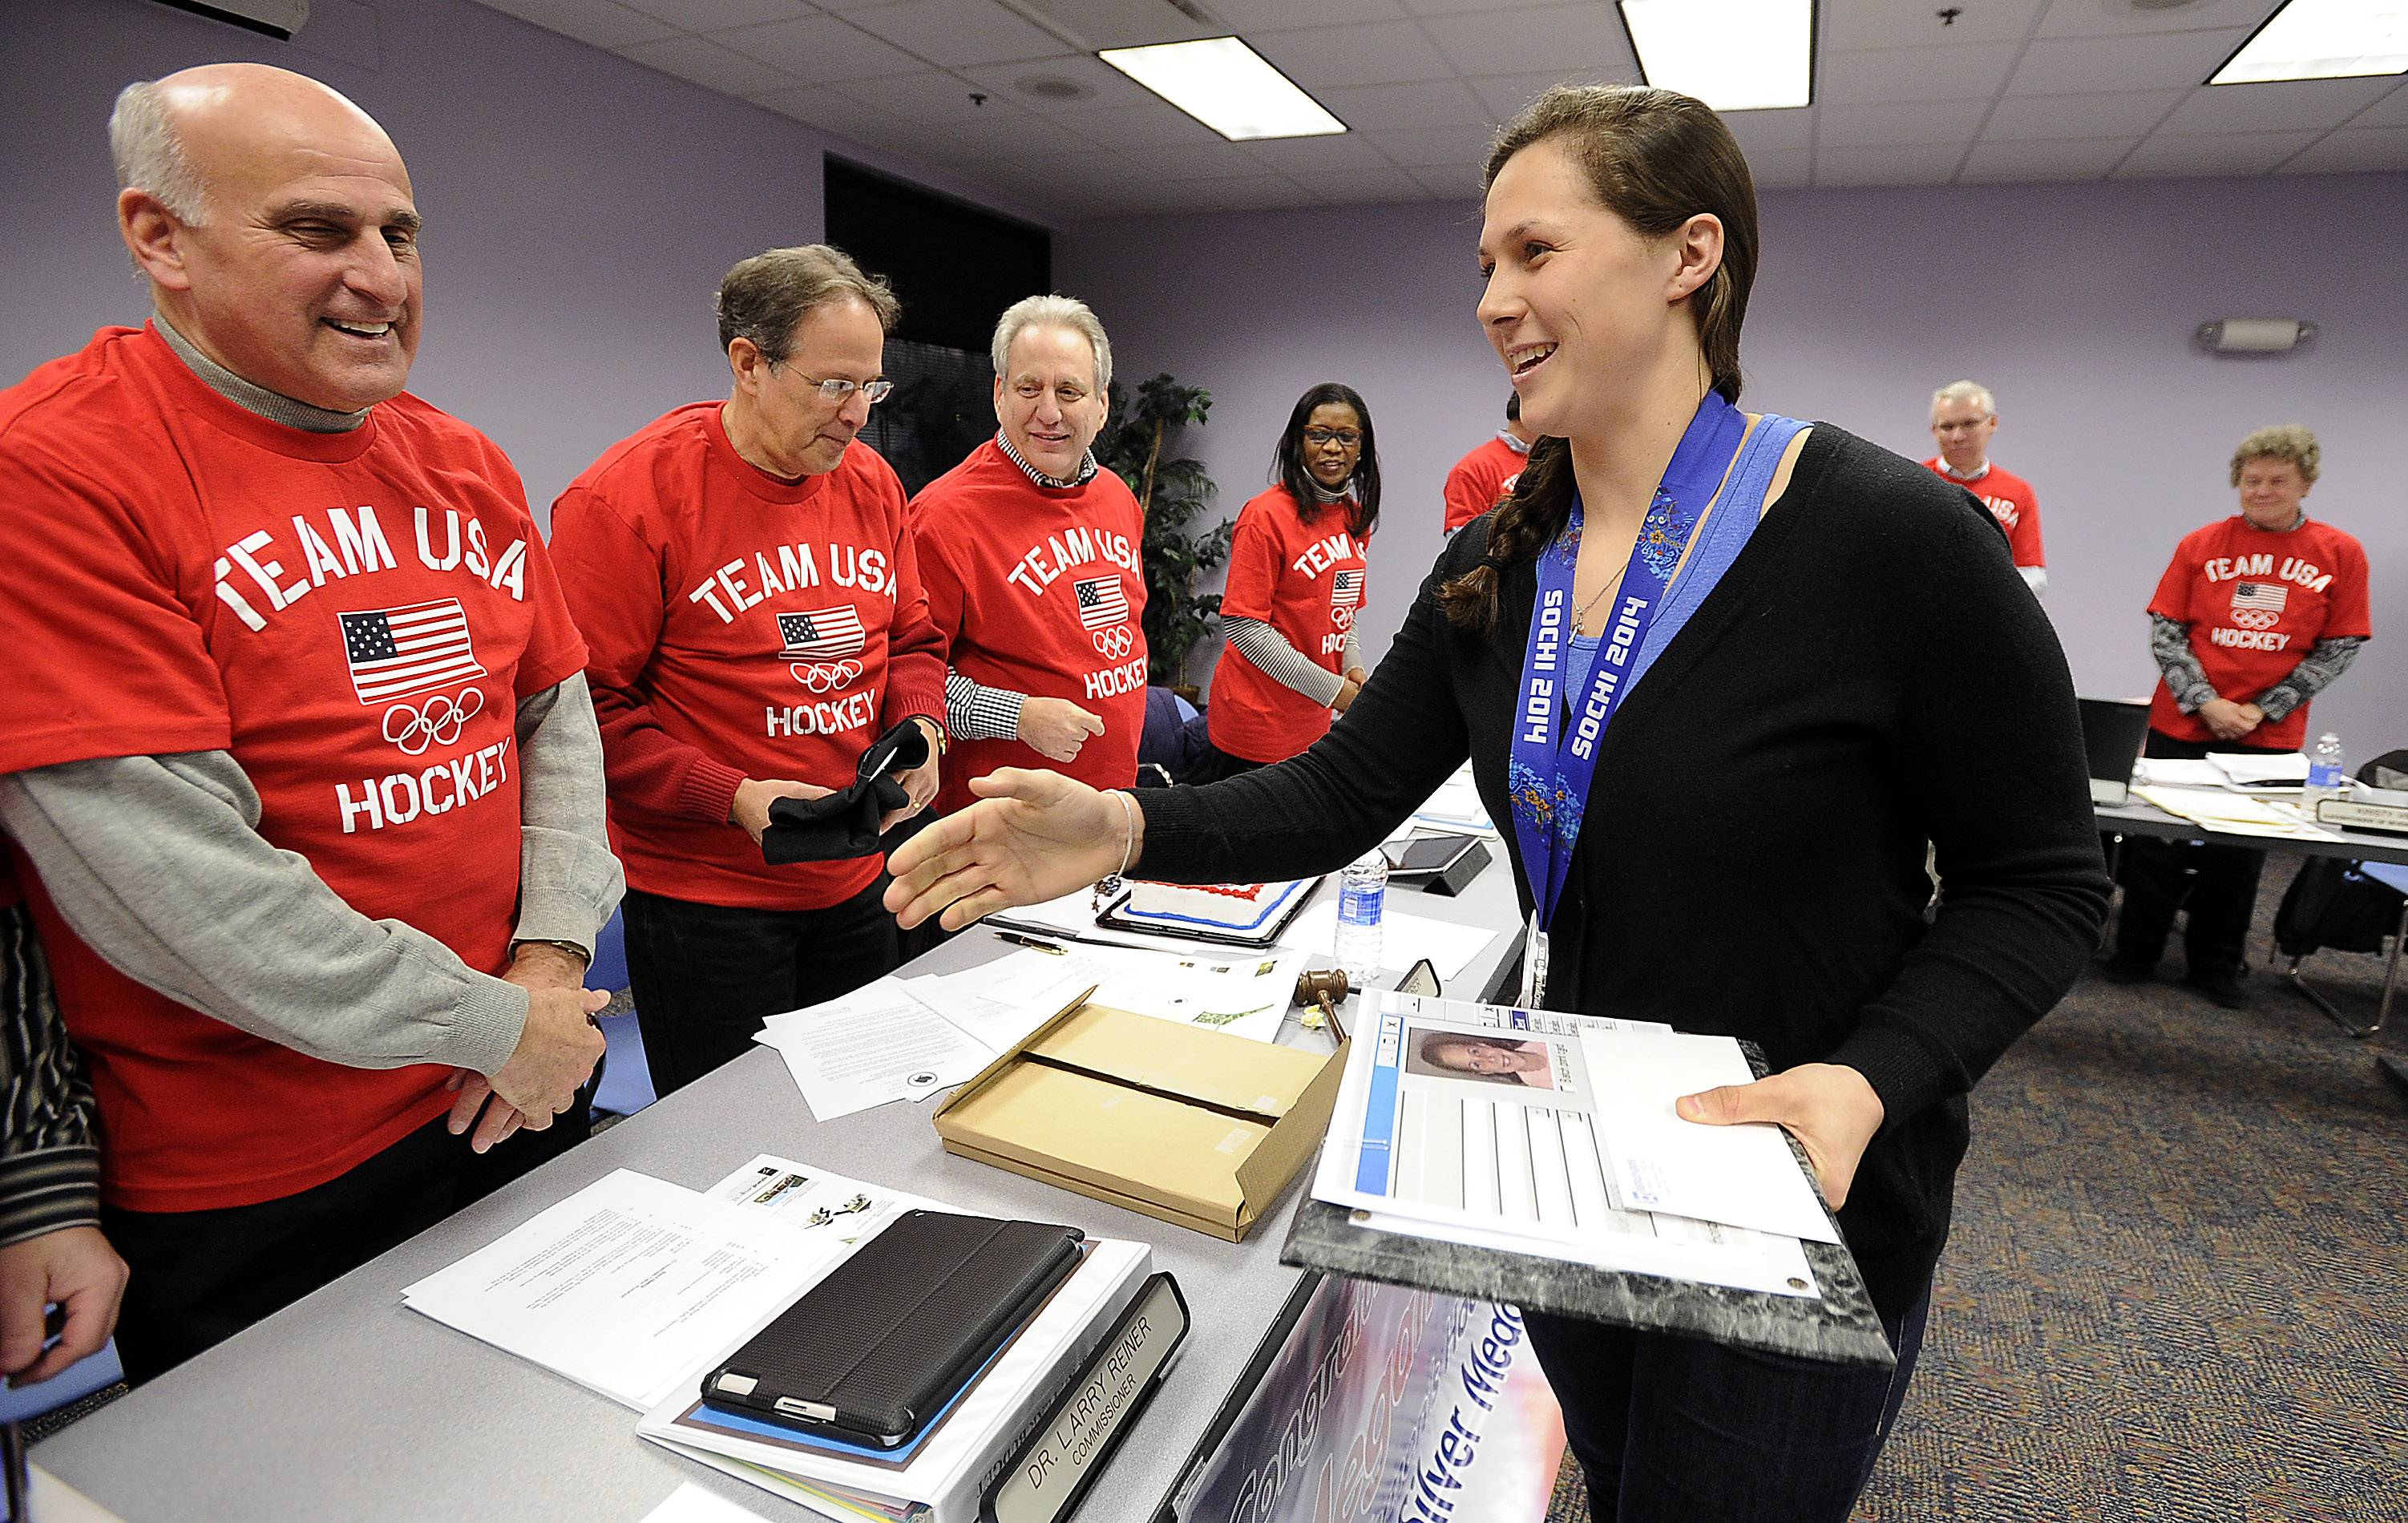 Buffalo Grove resident Megan Bozek is greeted by the members of the Buffalo Grove Park District Monday where she proudly displayed her silver medal she won on the Winter Olympics hockey team in Sochi. She was honored for her achievements.